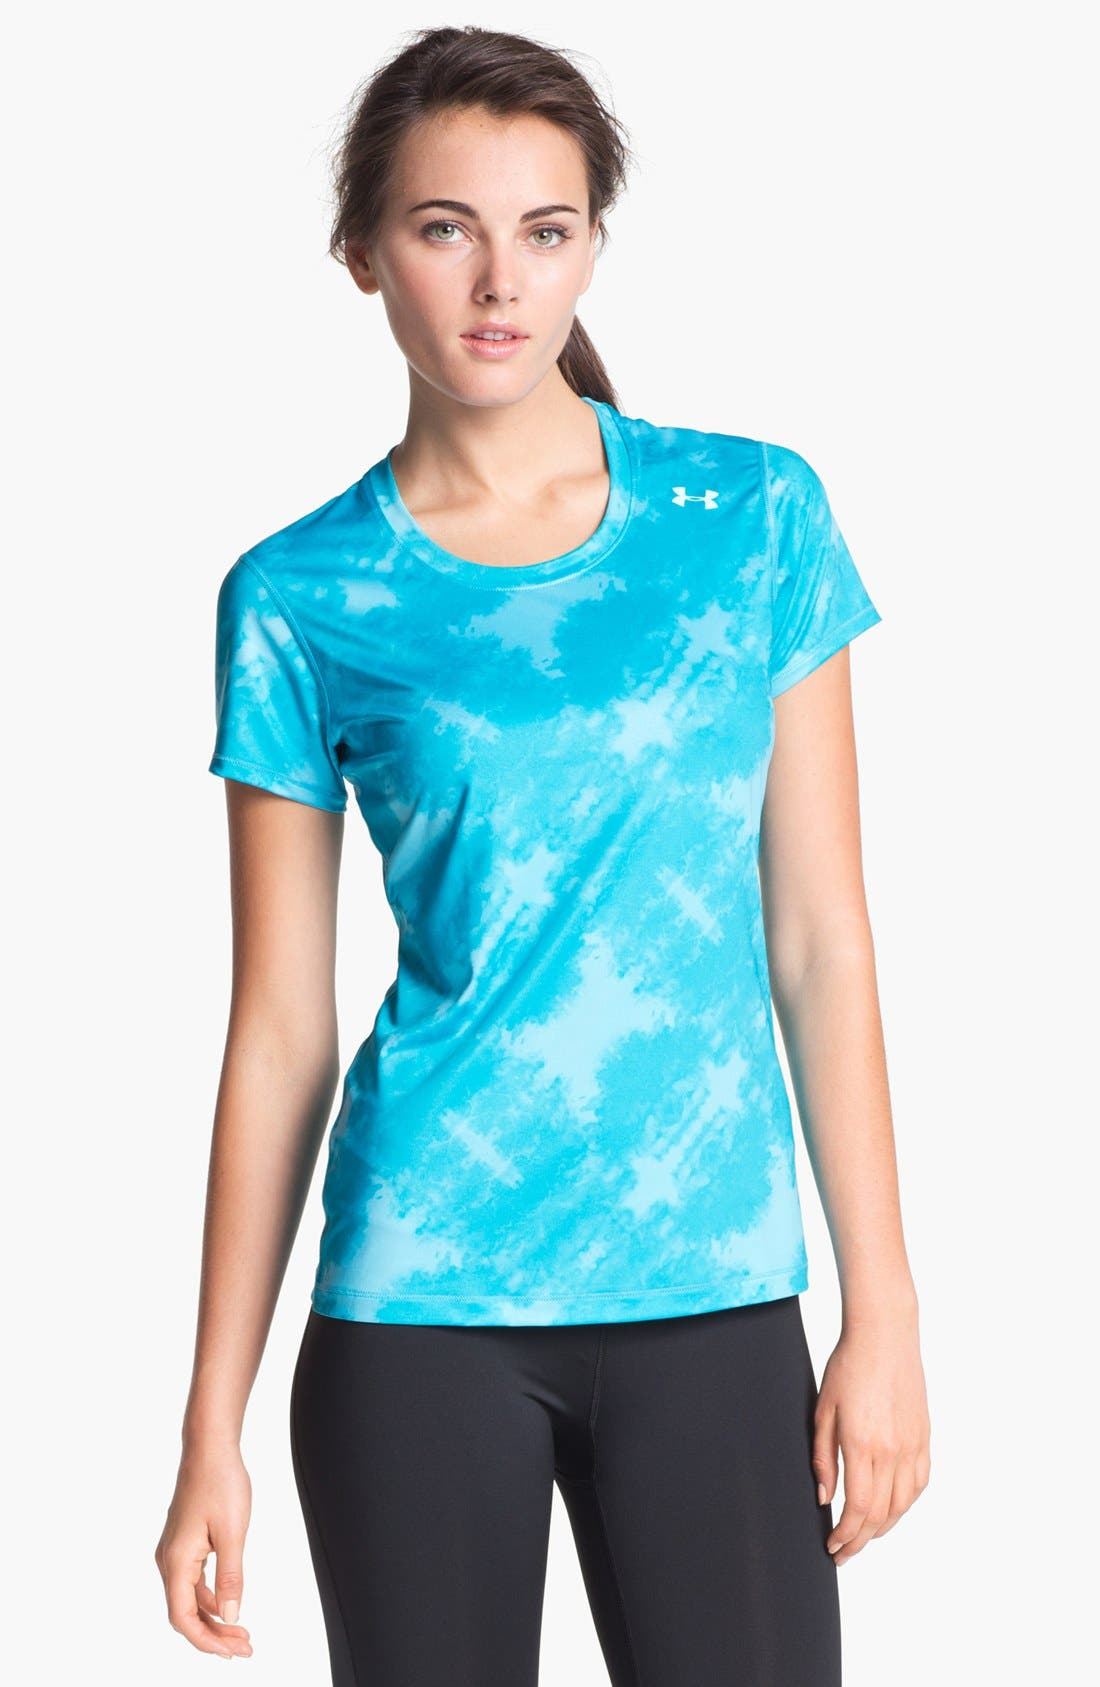 Main Image - Under Armour 'Hot Shot' Print Tee